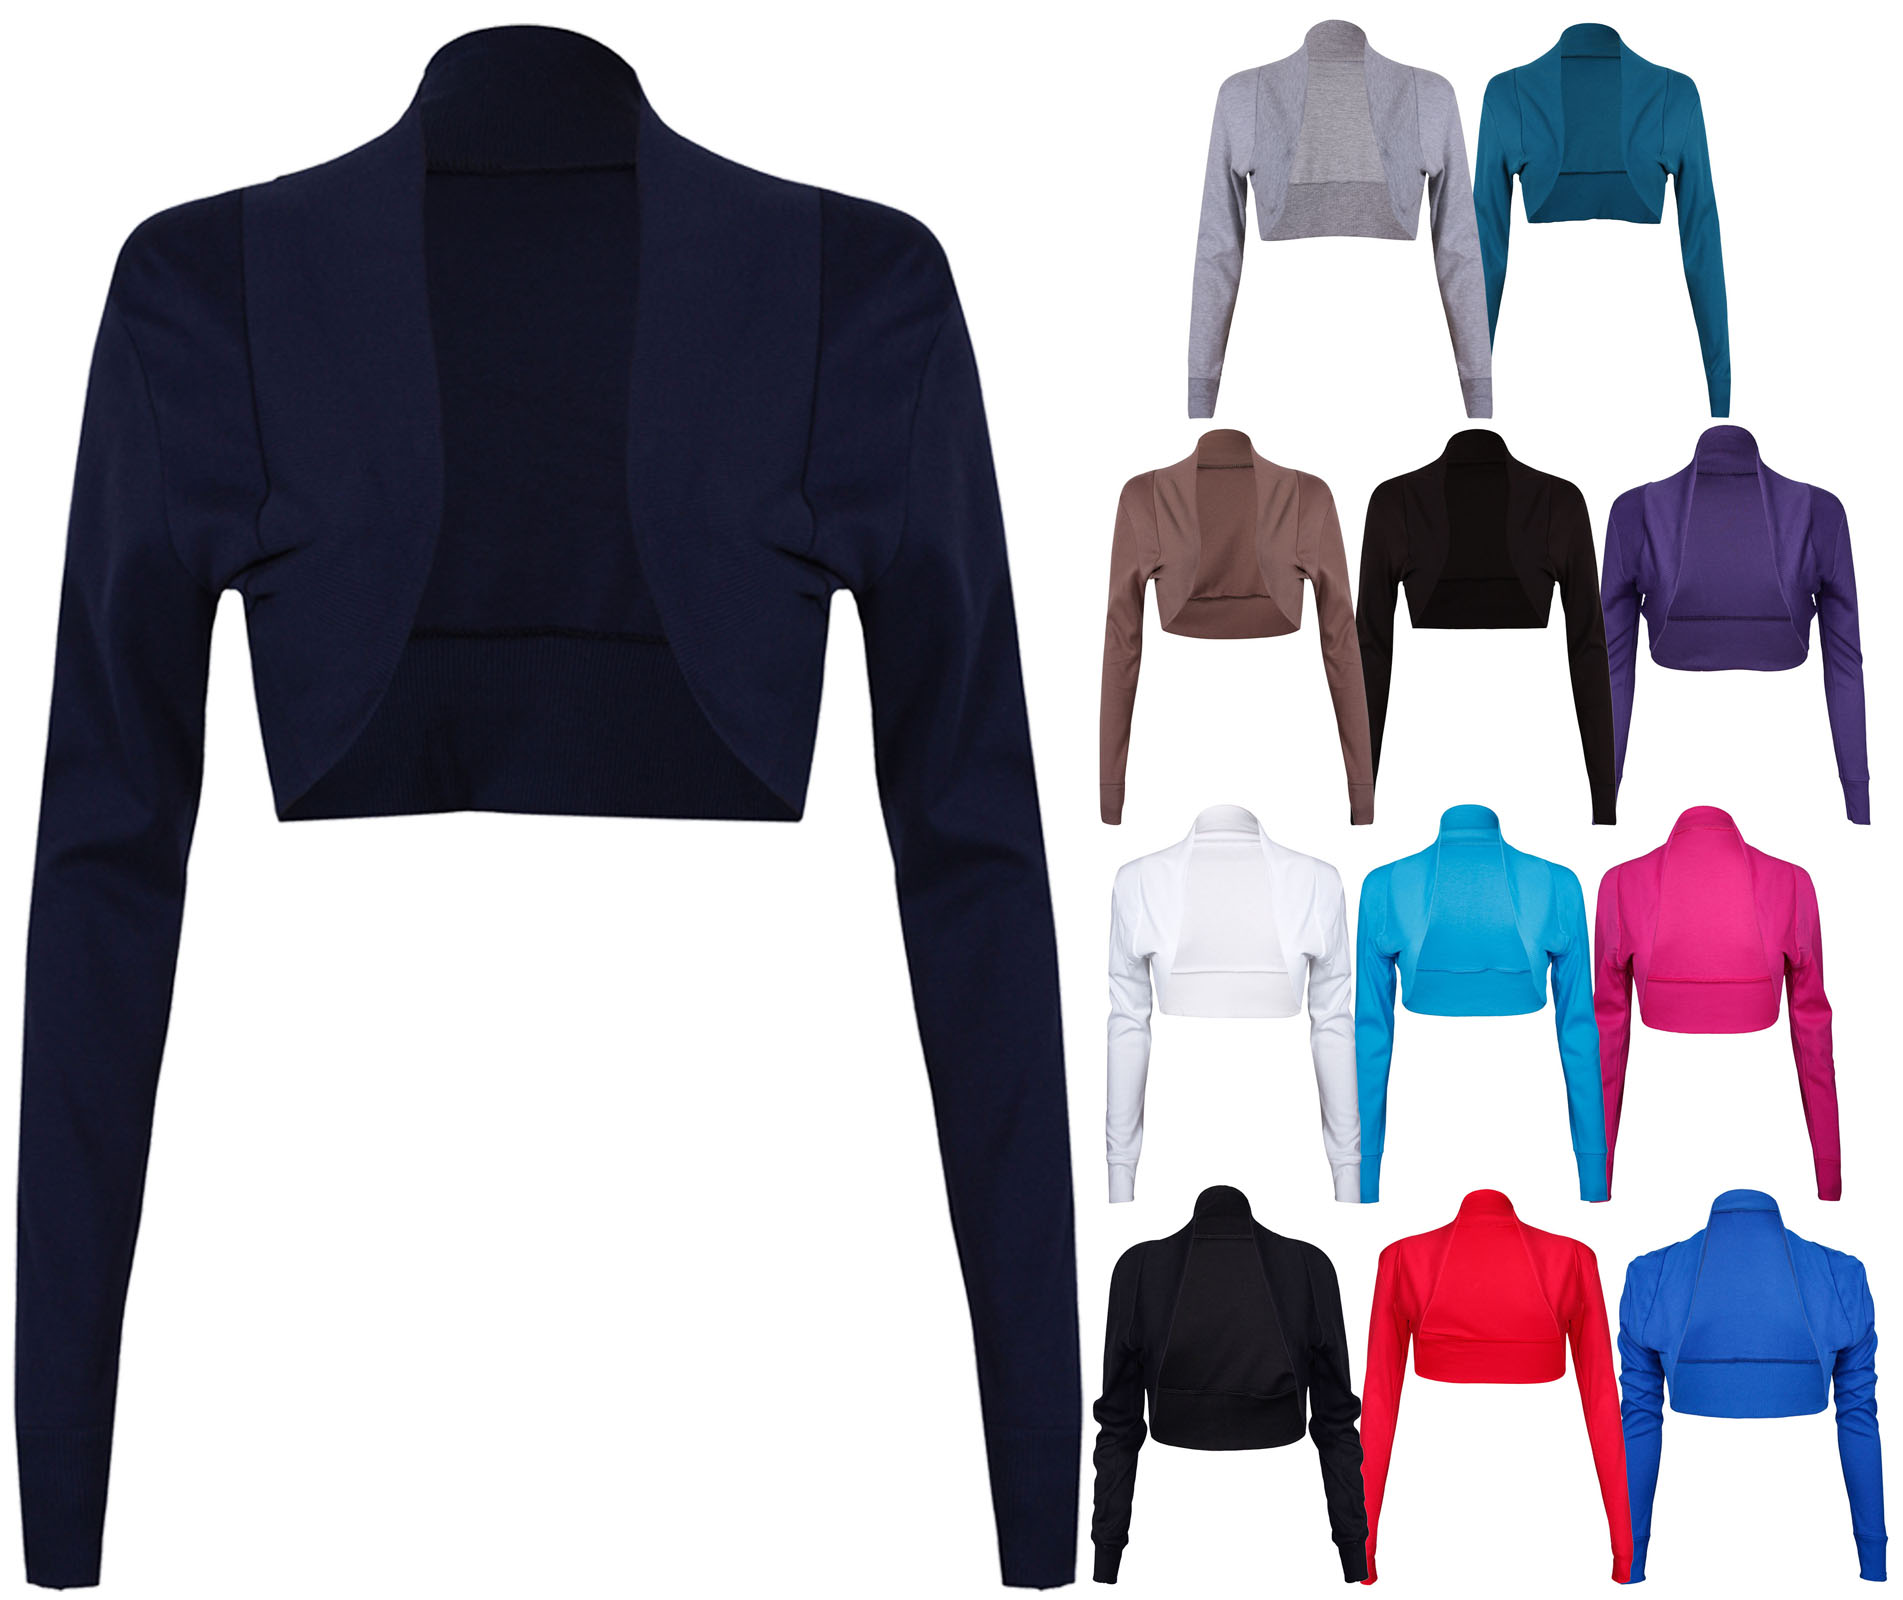 NEW-LADIES-LONG-SLEEVE-STRETCH-BOLERO-SHRUG-WOMENS-TOP thumbnail 17